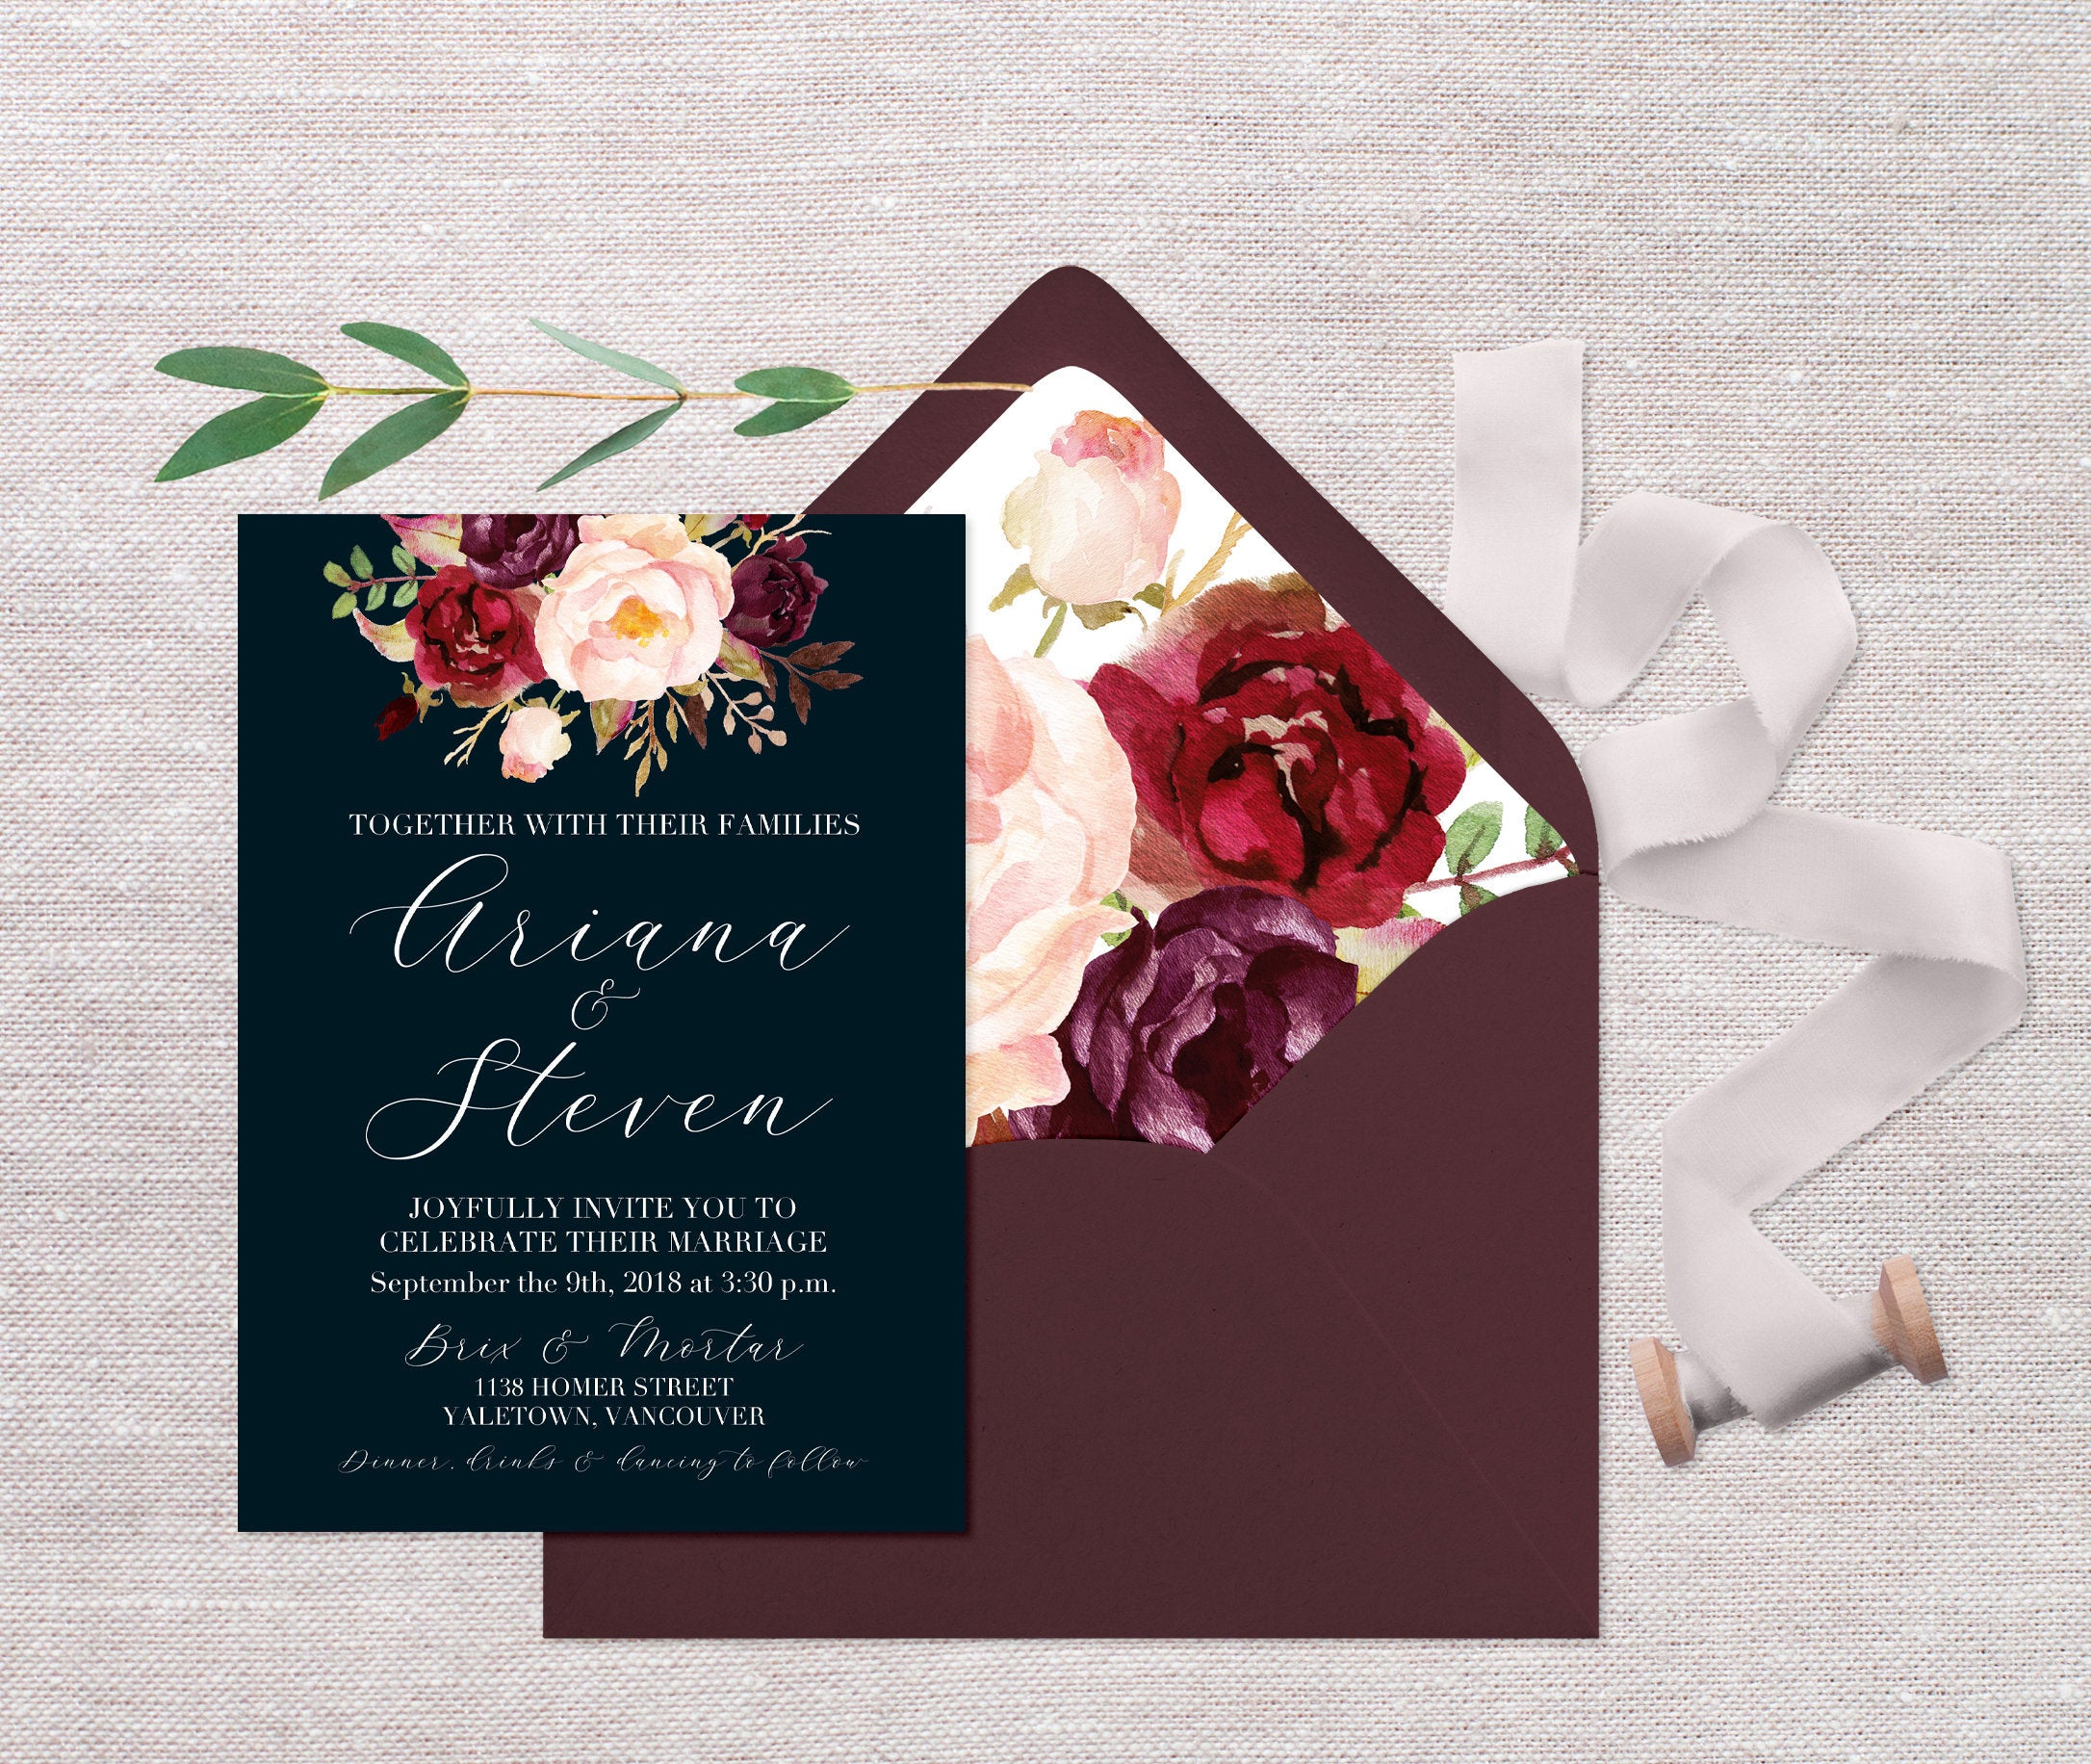 Getting Married Floral Invitation: Navy Blue Floral Wedding Invitations, Moody Dark Floral